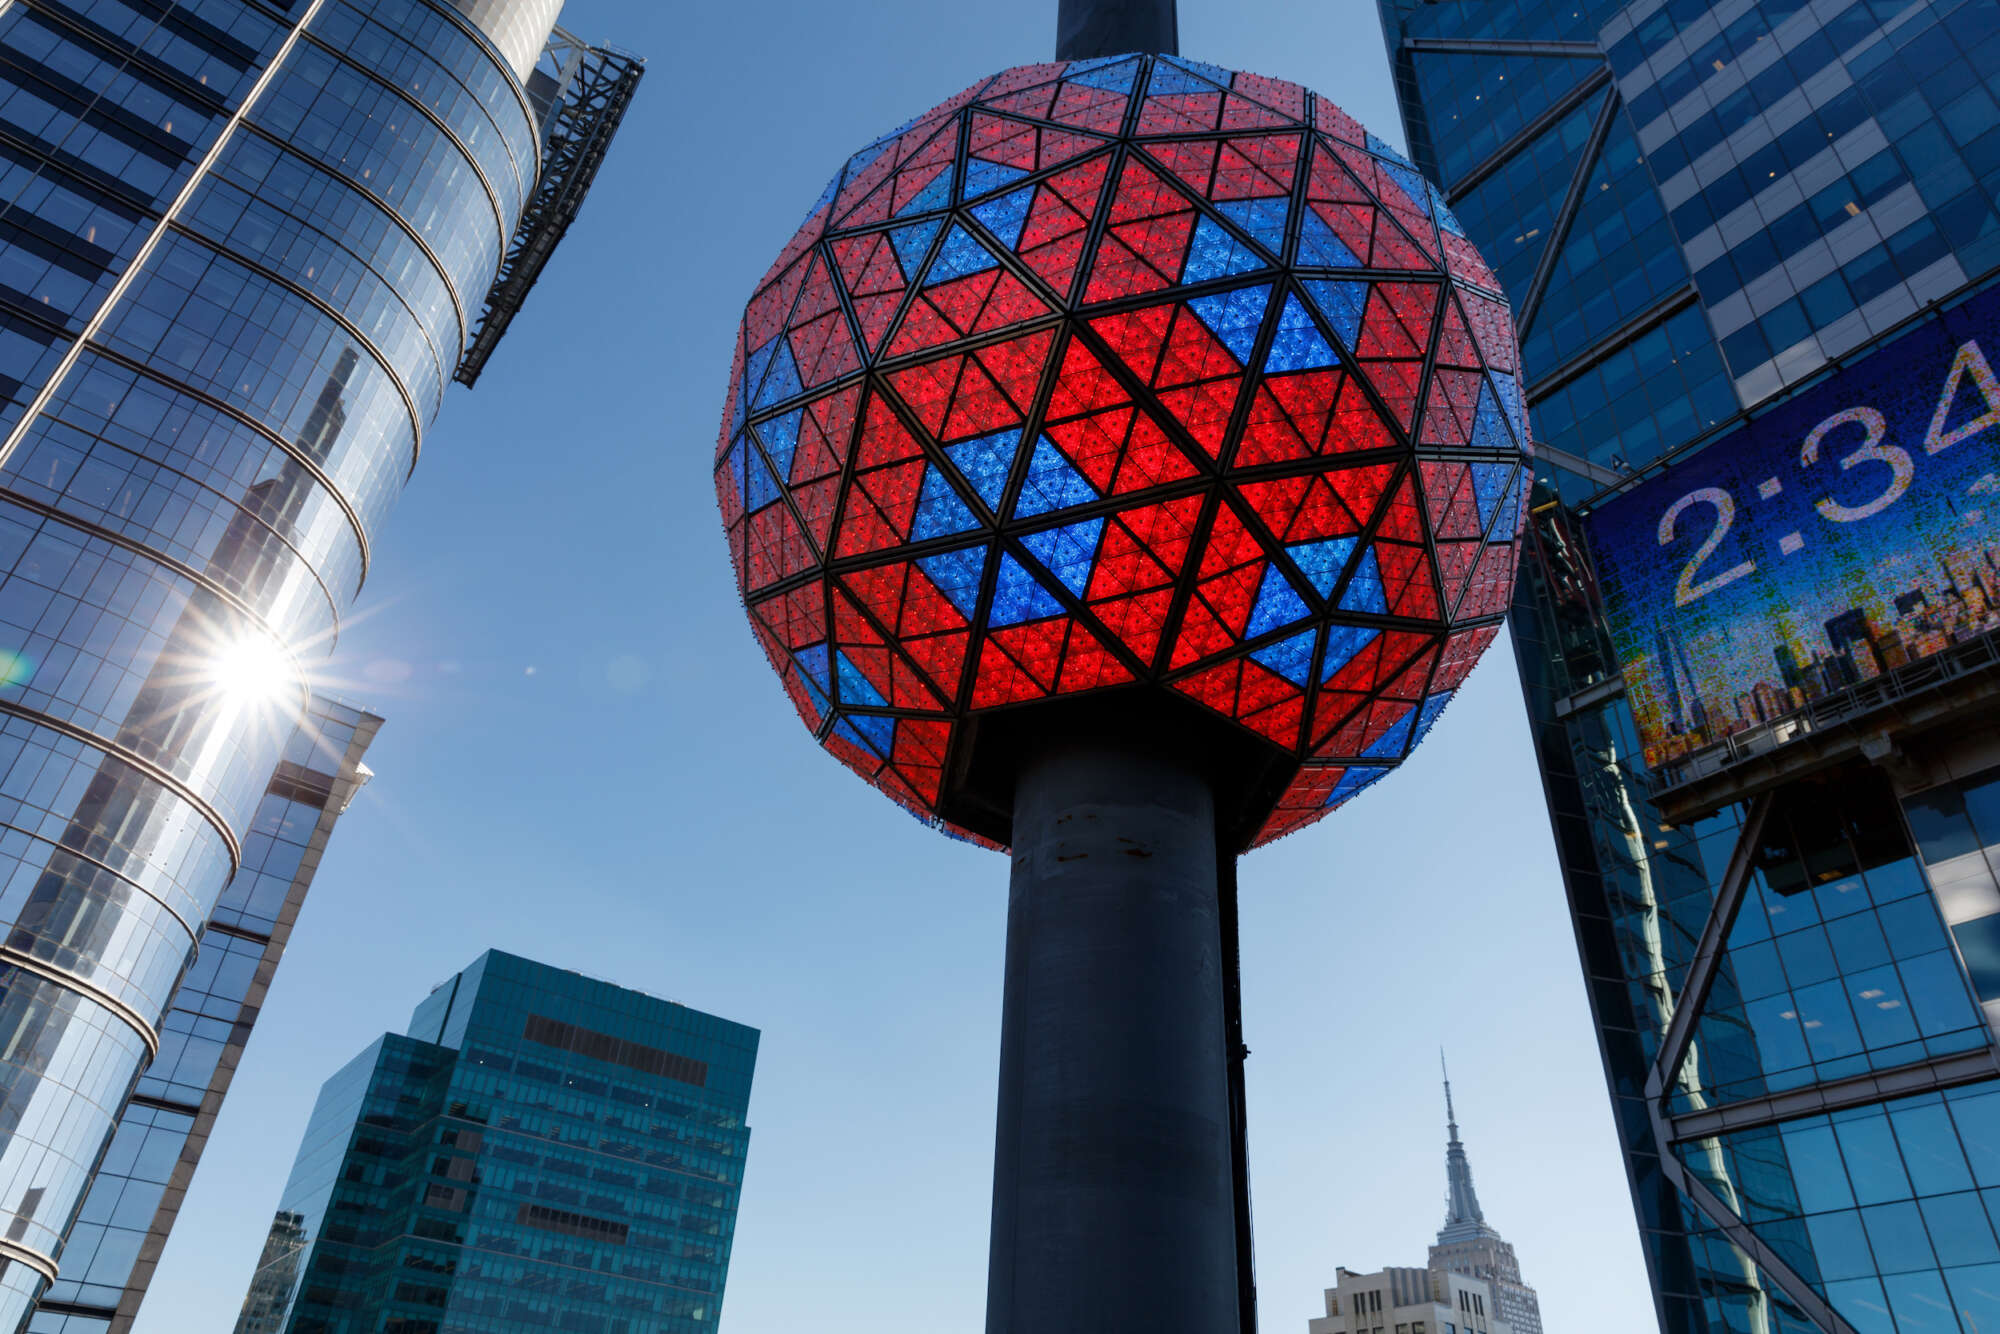 The large crystal New Year's Eve Ball on the top of One Times Square is lit red and blue.